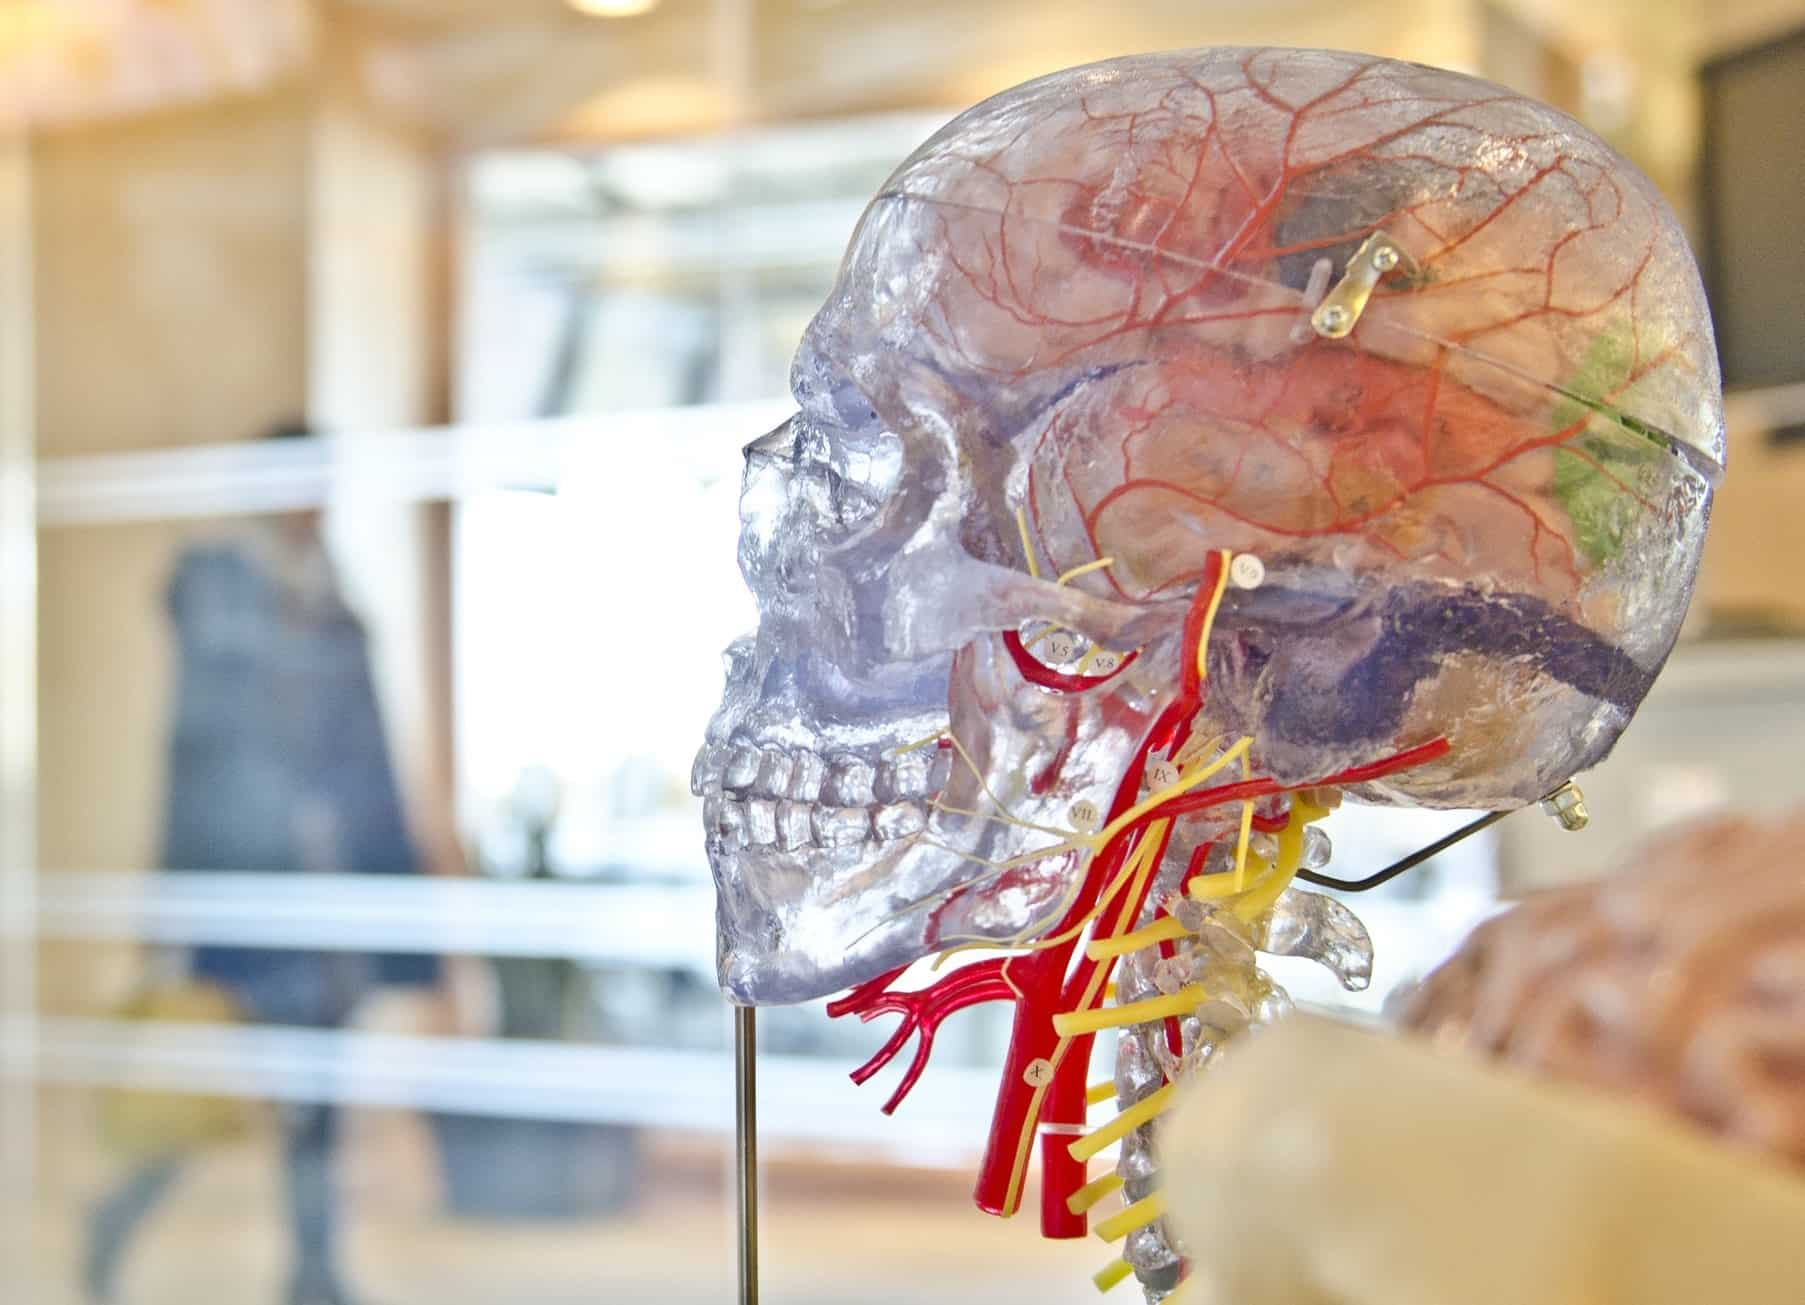 Transparent skull with colourful brain inside